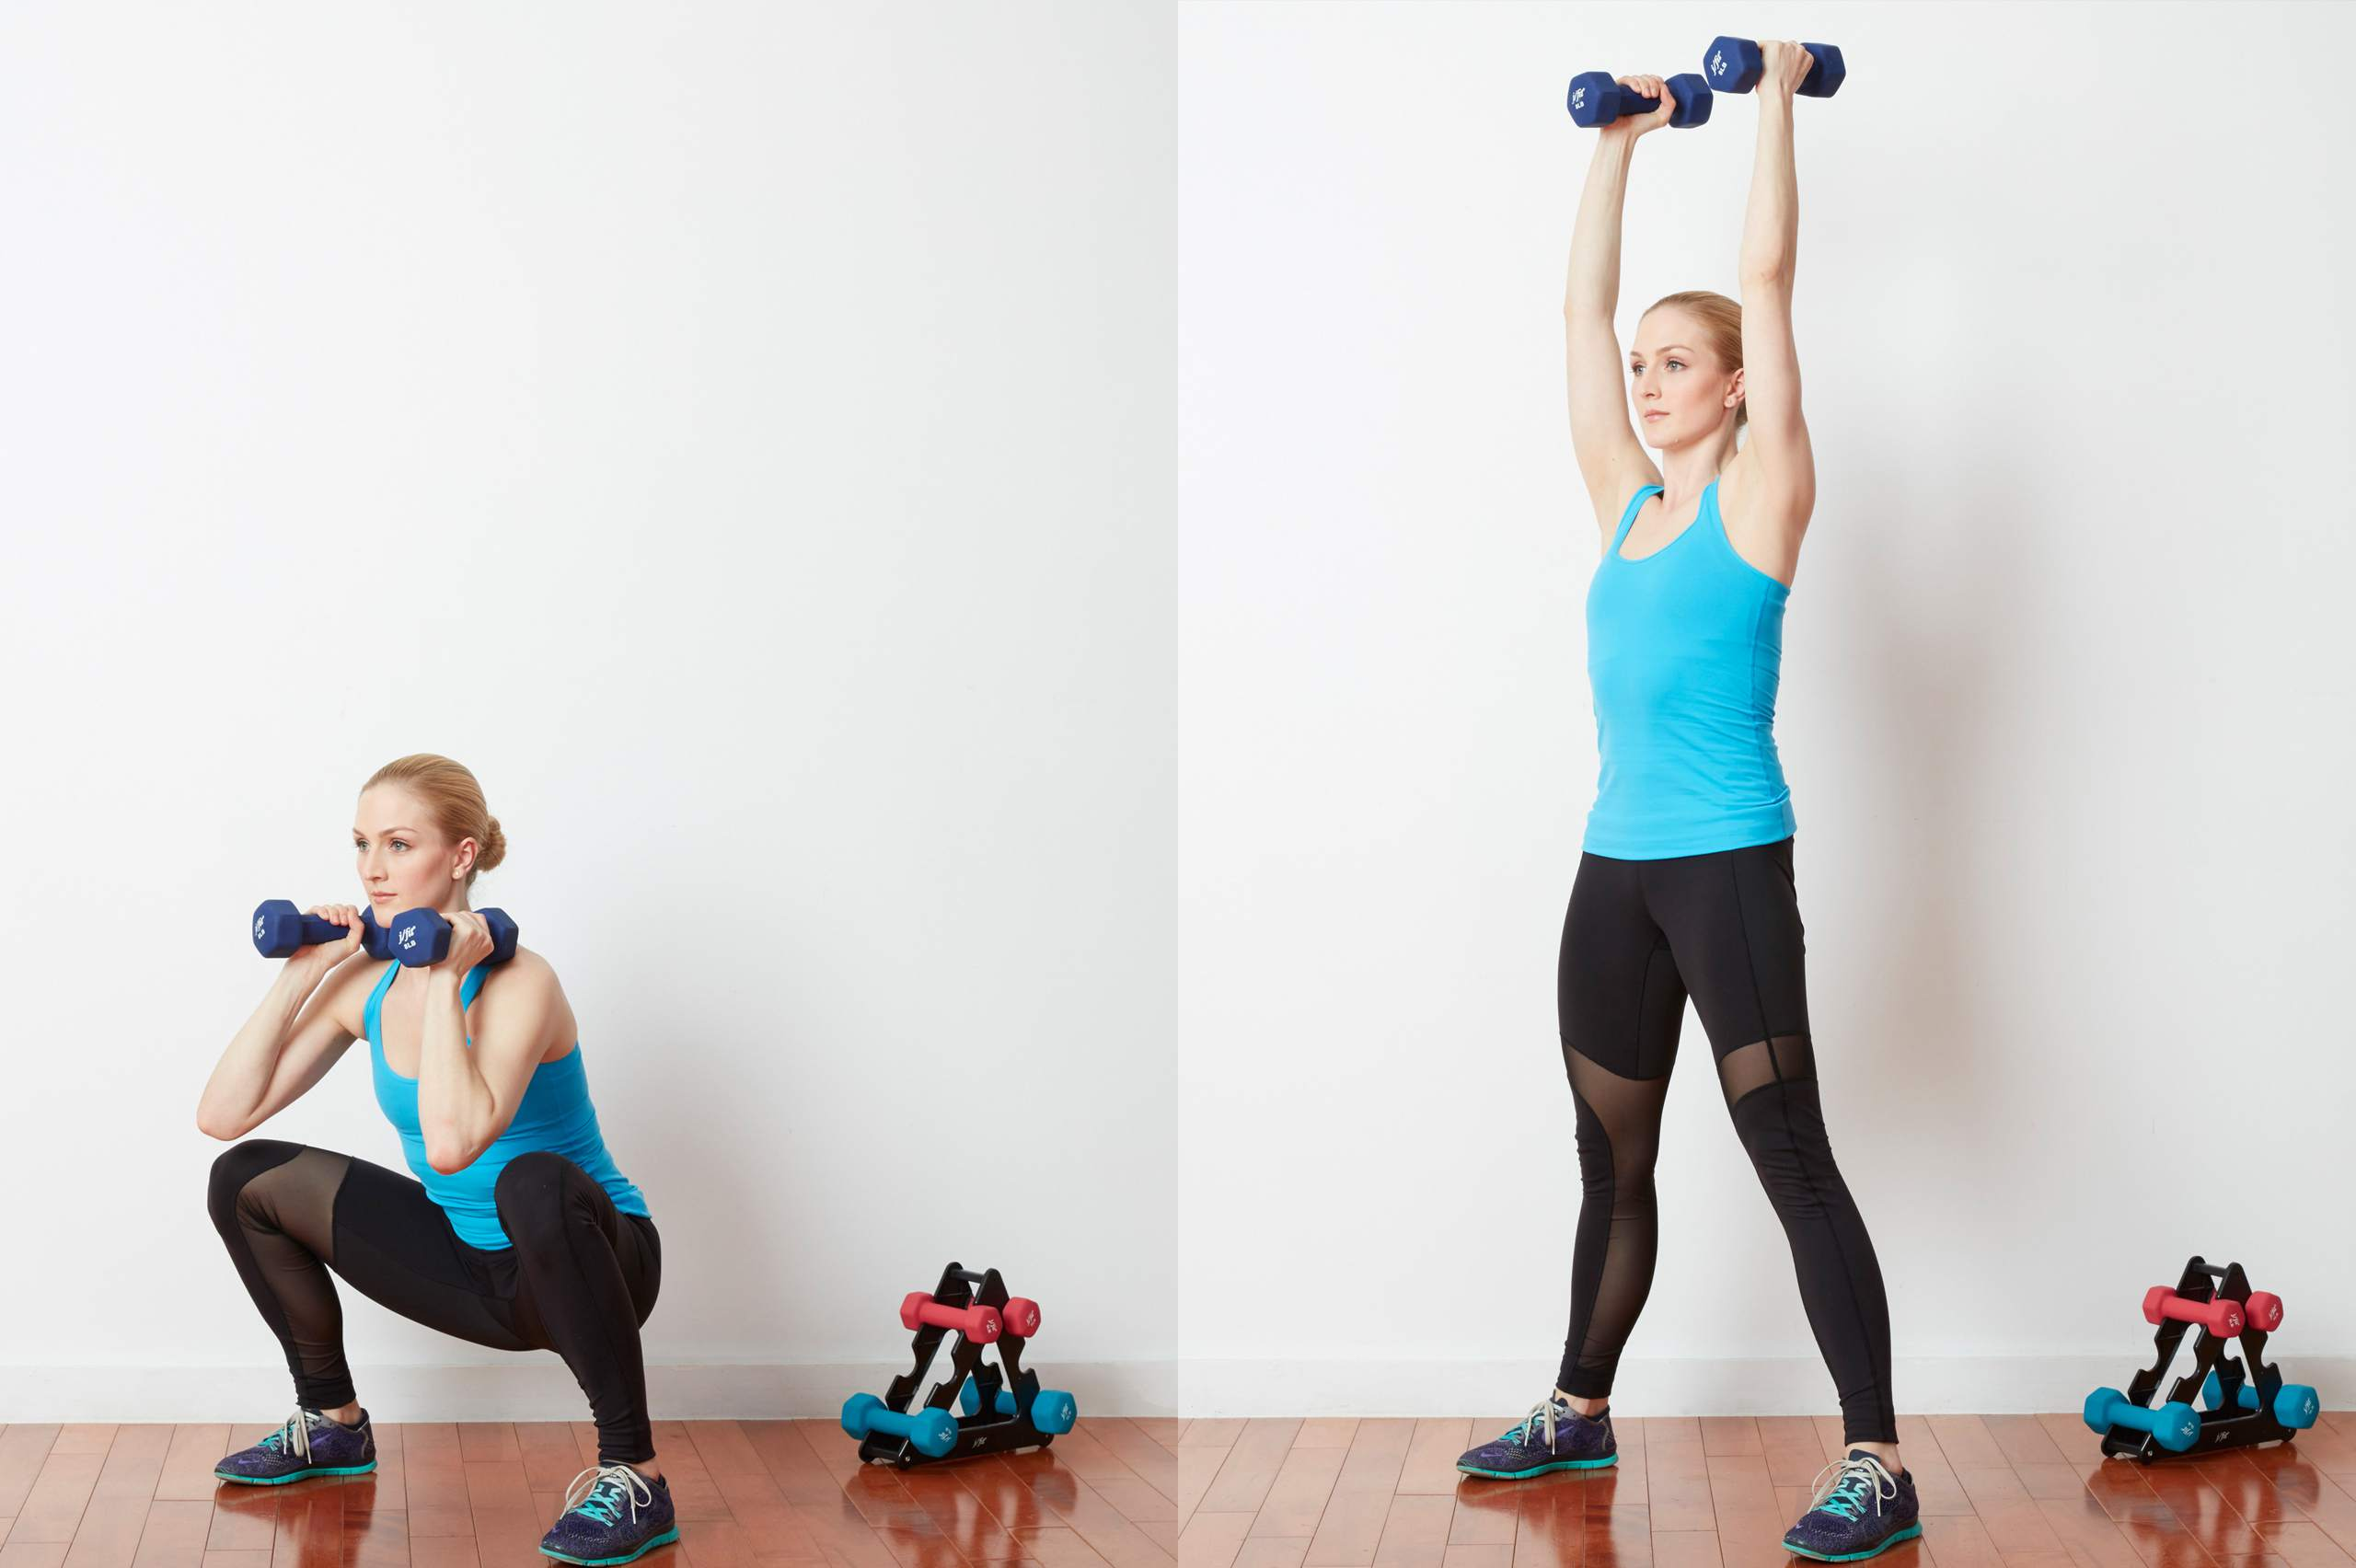 The 10 Minute Workout That Burns More Calories Circuit Training For Weight Loss Burn 30 Percent Get 1 Squat Press